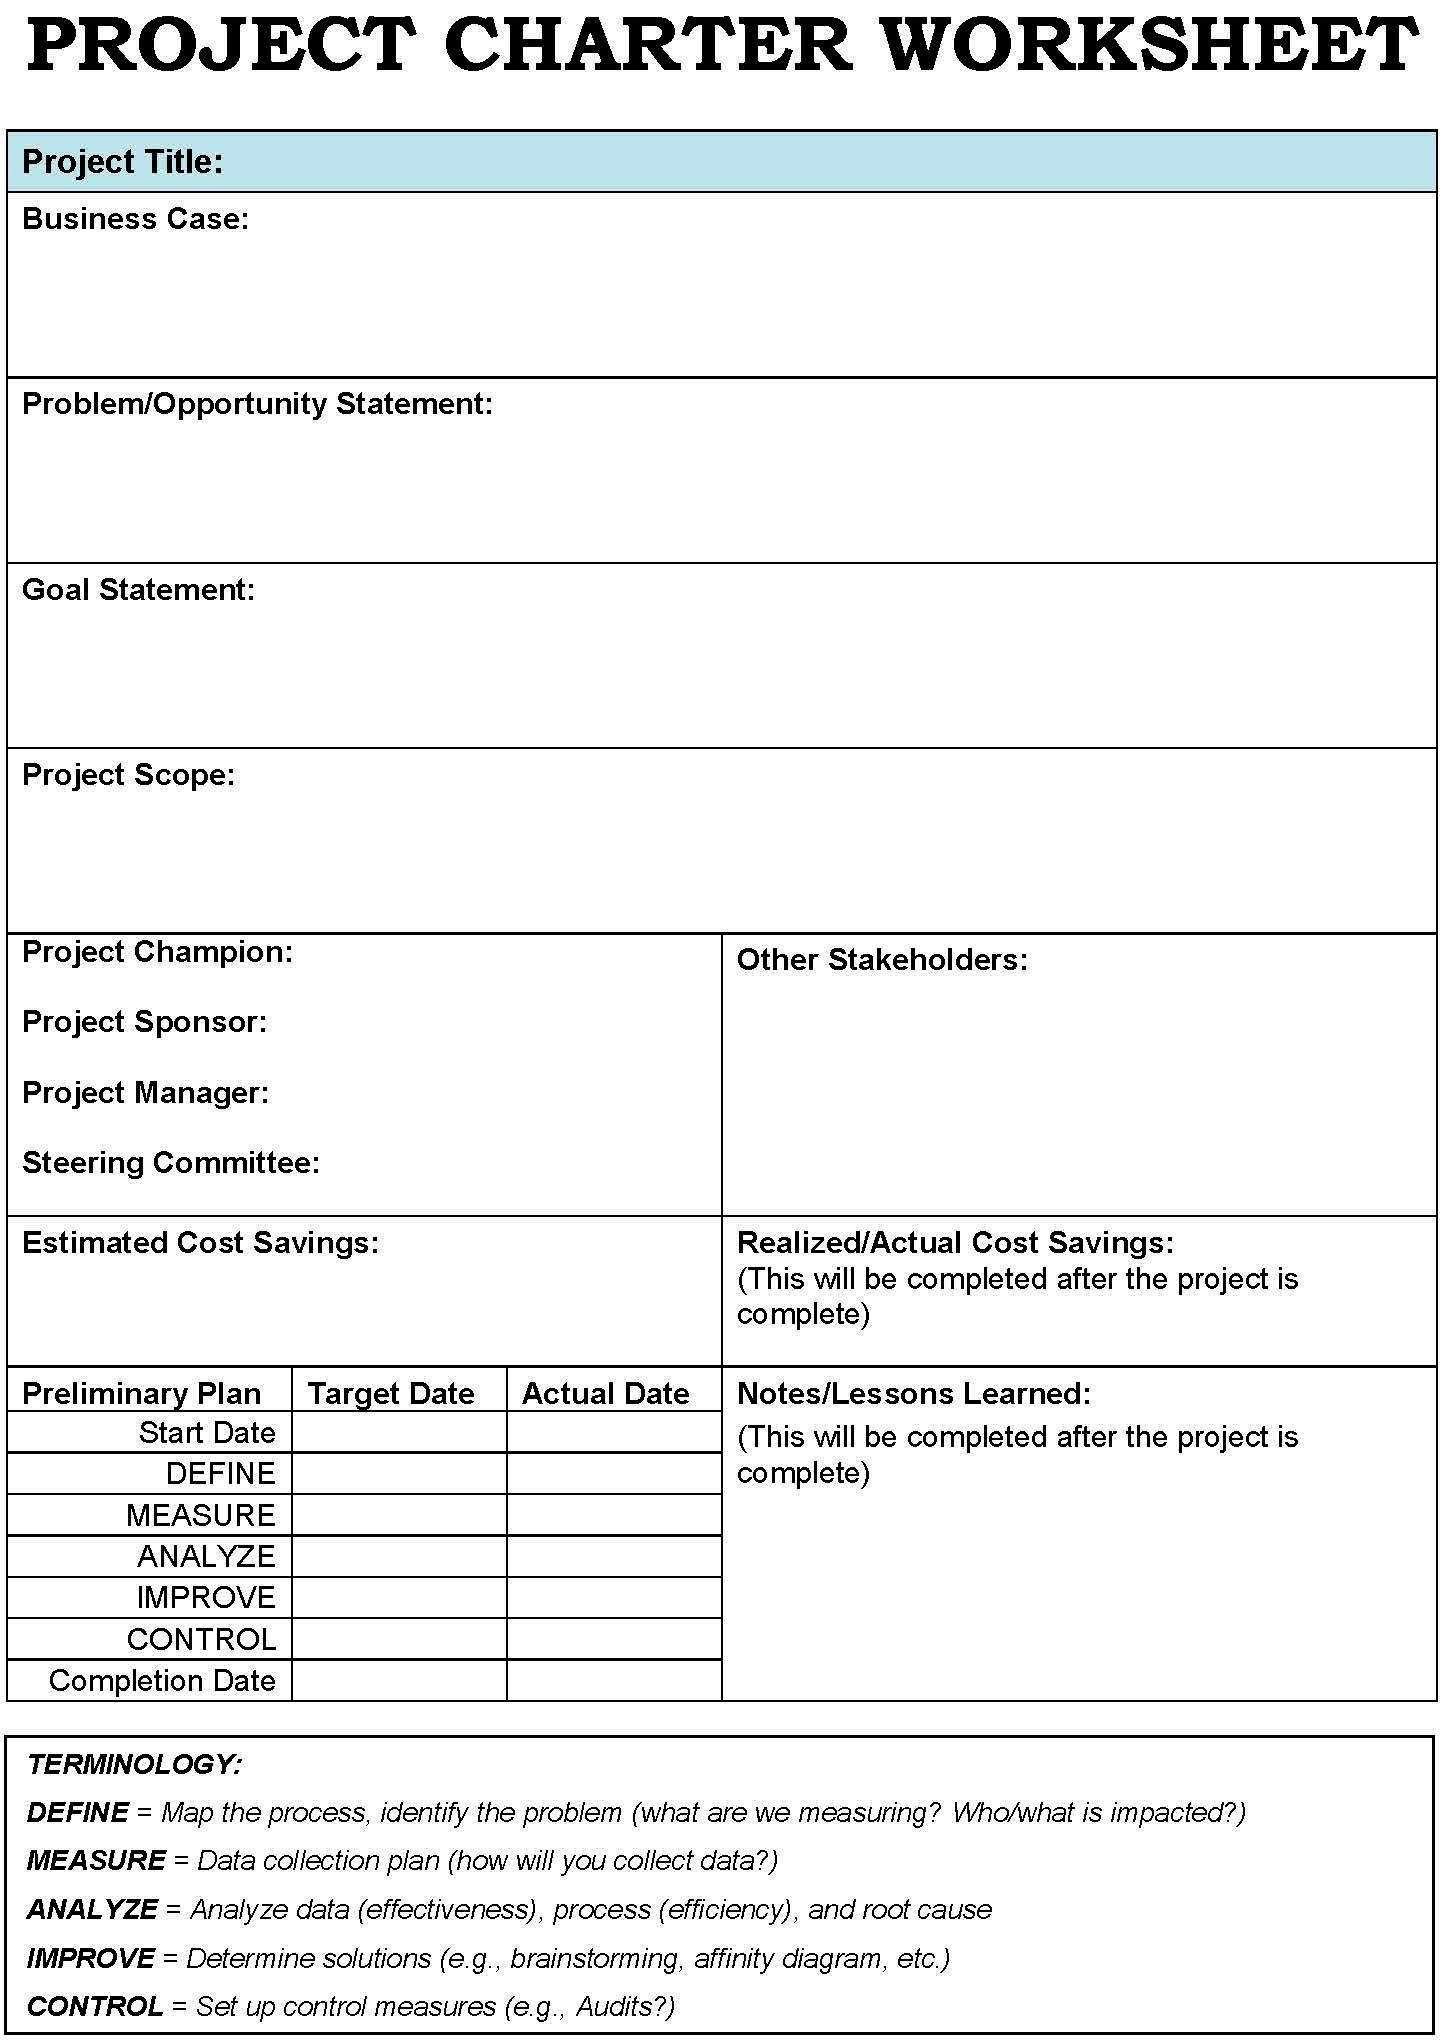 Project Charter Template Excel Project Charter Templates Google Search